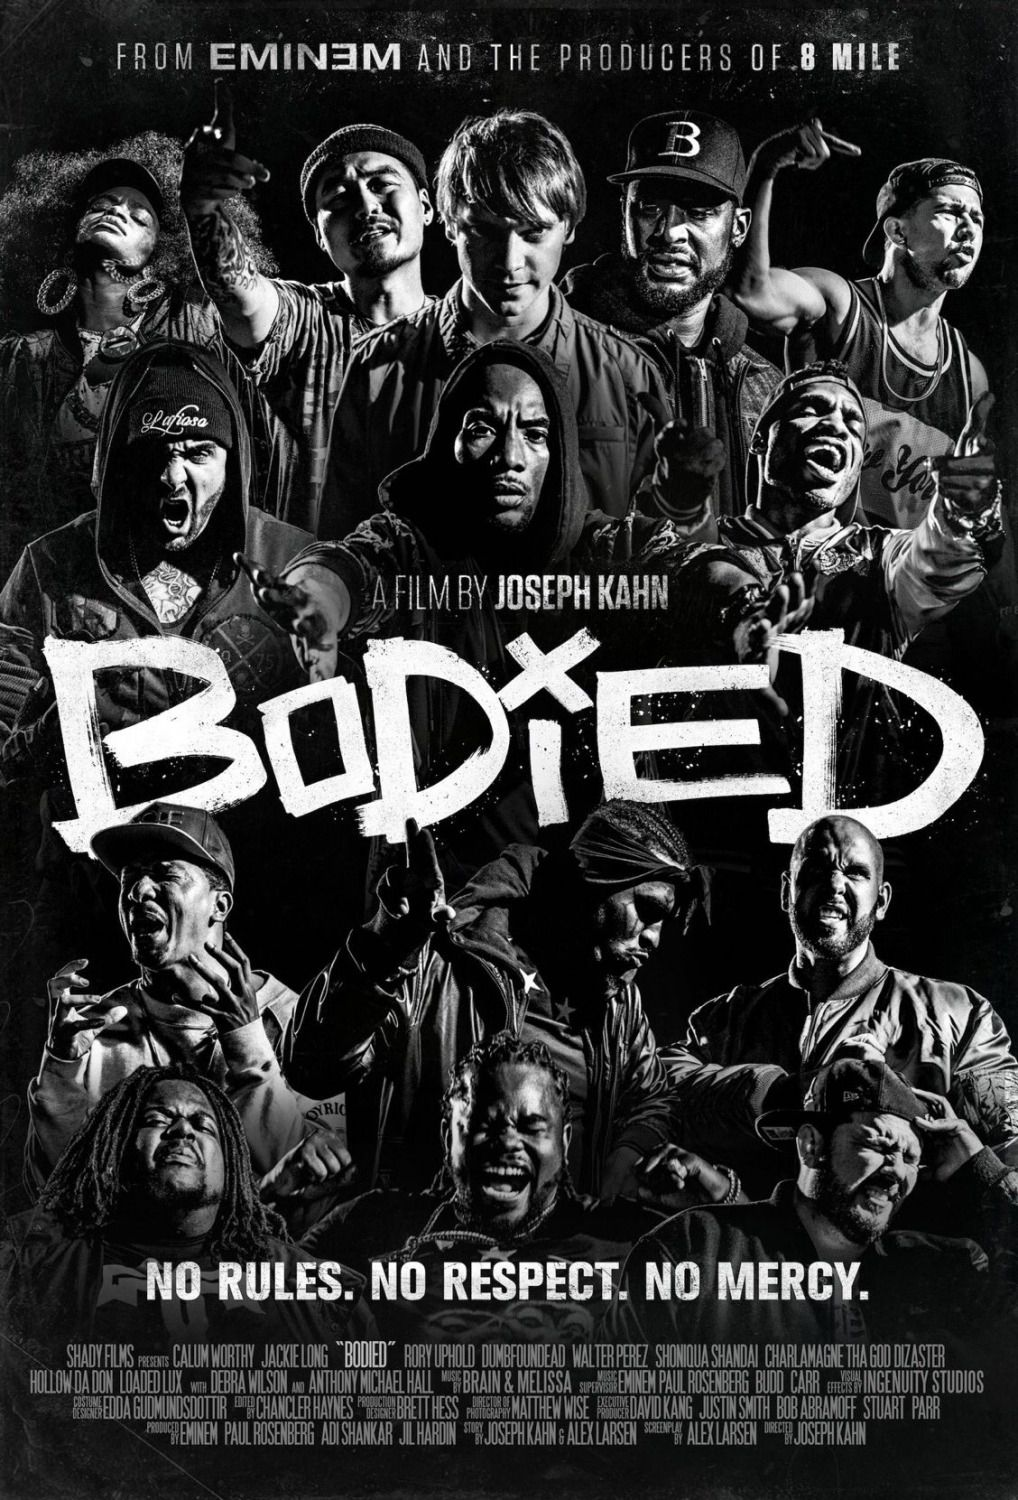 Bodied - poster film by Joseph Kahn - Eminem - Rap Battle